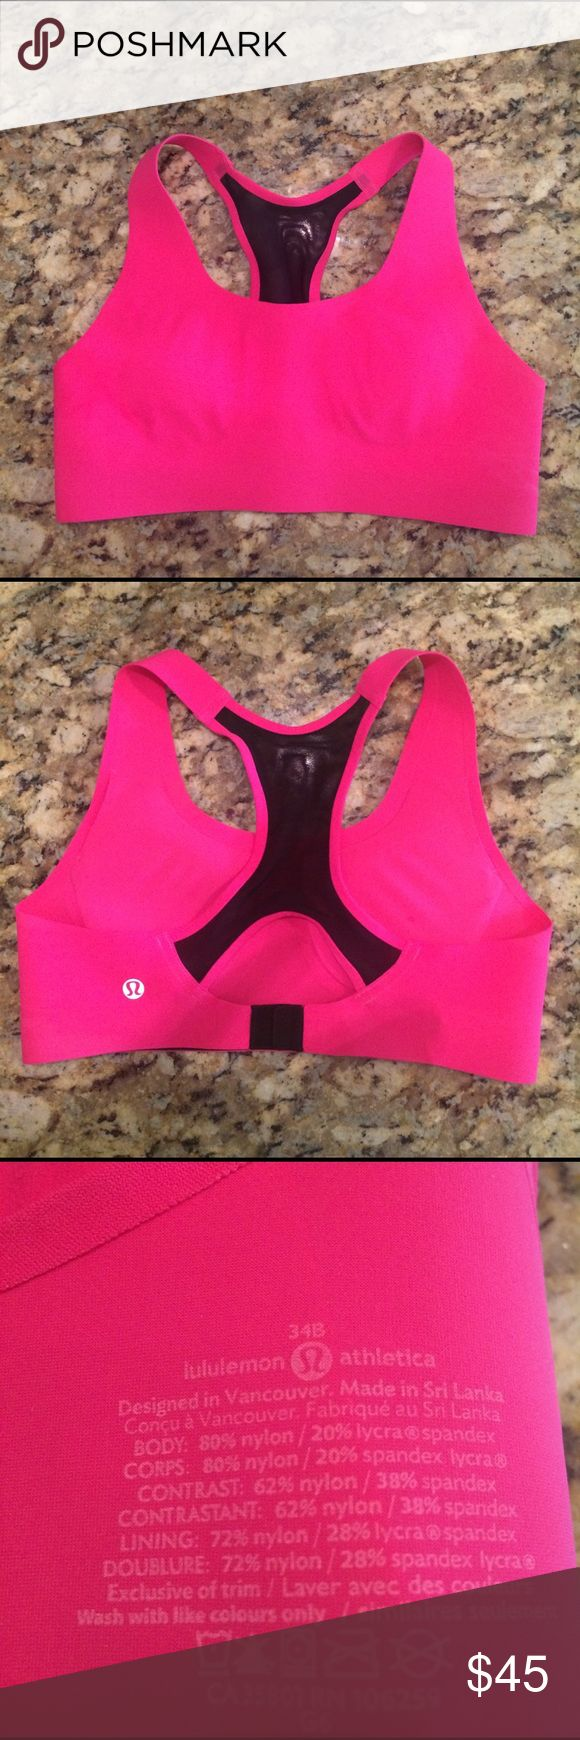 Lululemon Athletica Sports Bra Lululemon Athletica sports bra. I ordered this bra online and it's too small. The size is 34b but is more like a 32-34A. lululemon athletica Intimates & Sleepwear Bras